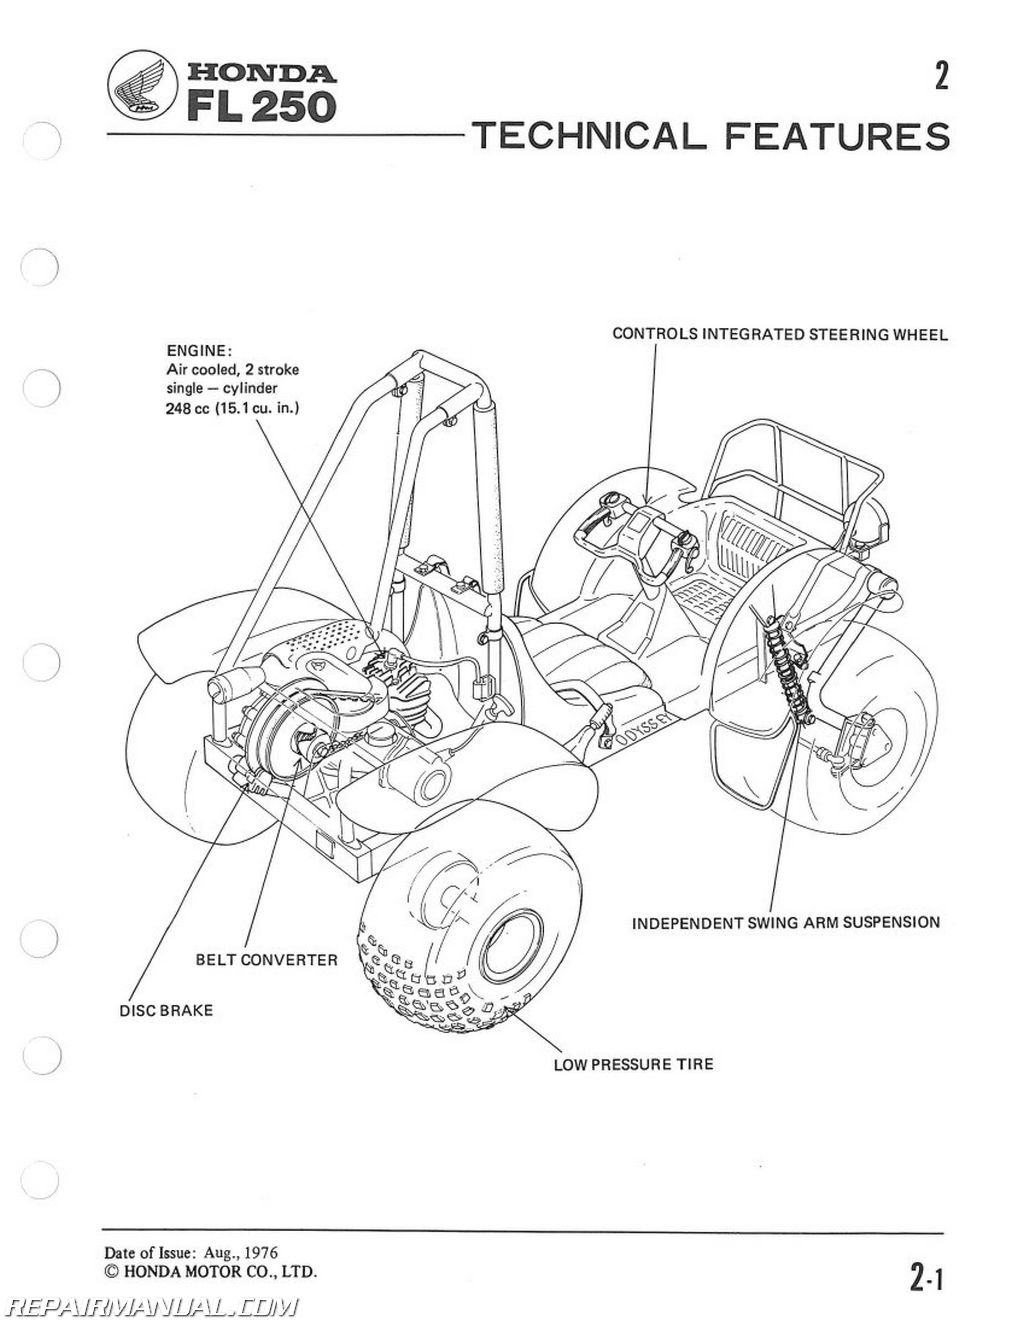 6295004 page 1?resize\=665%2C861 p7125559 wiring diagram p7125559 wiring diagrams collection toro 72043 wiring diagram at reclaimingppi.co